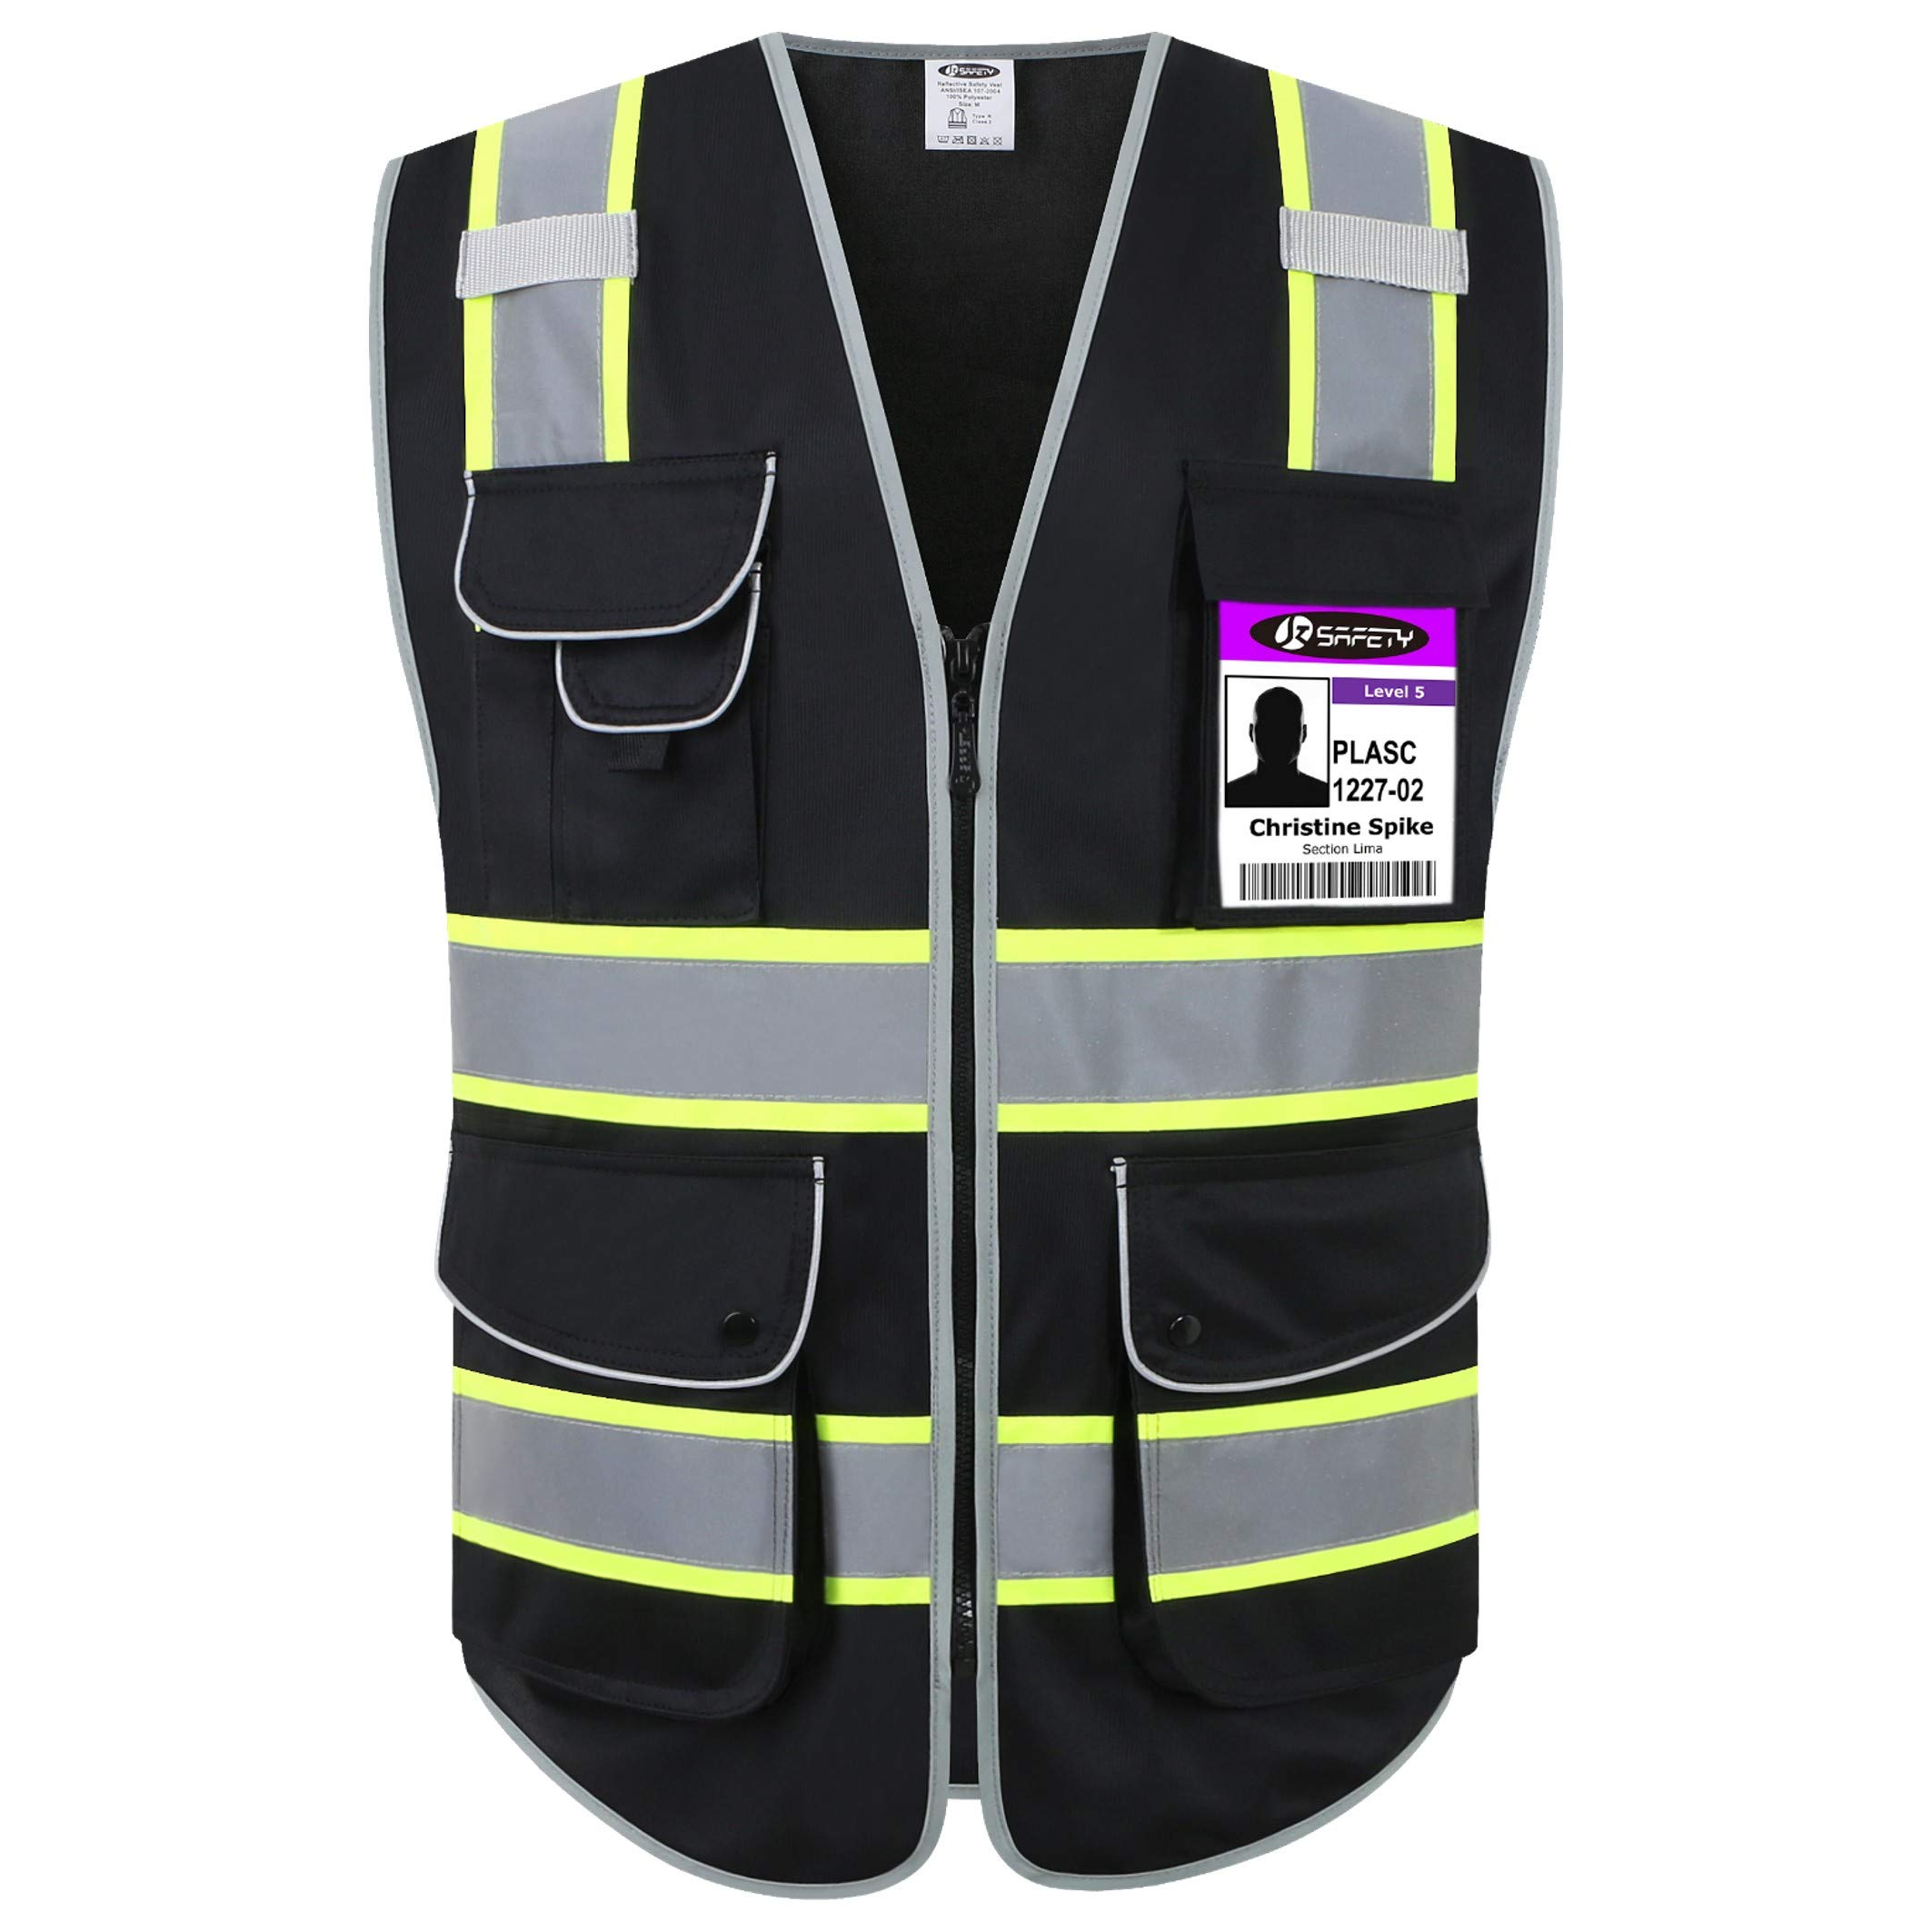 JKSafety 9 Pockets High Visibility Zipper Front Safety Vest Black with Dual Tone High Reflective Strips Meets ANSI/ISEA Standards (Black Yellow Strips, X-Large)